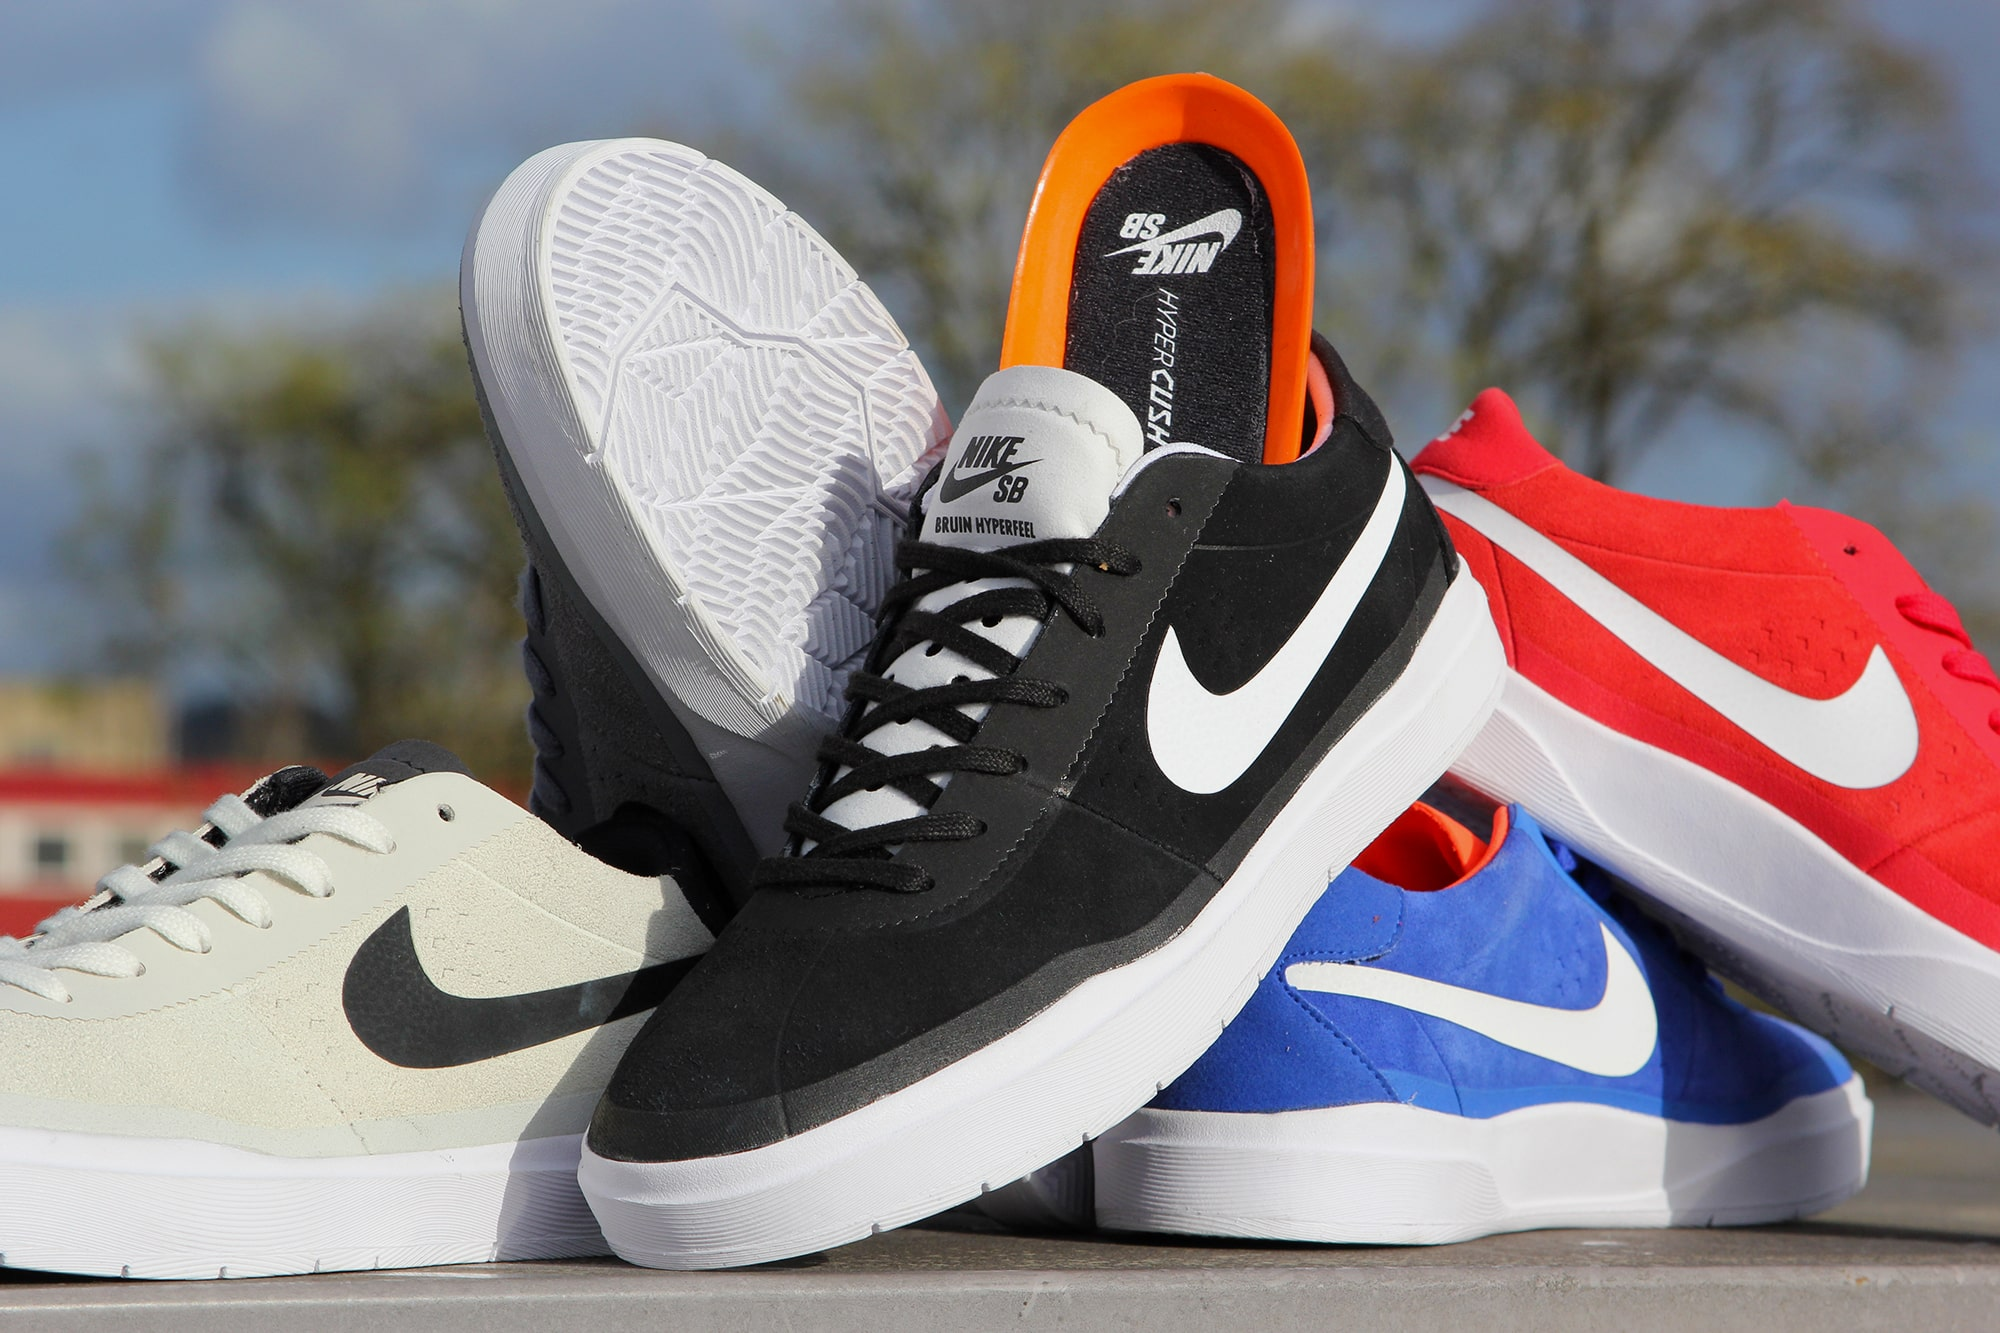 check out 45d7d c8a45 Shop Nike SB Bruin Hyperfeel Skate Shoes